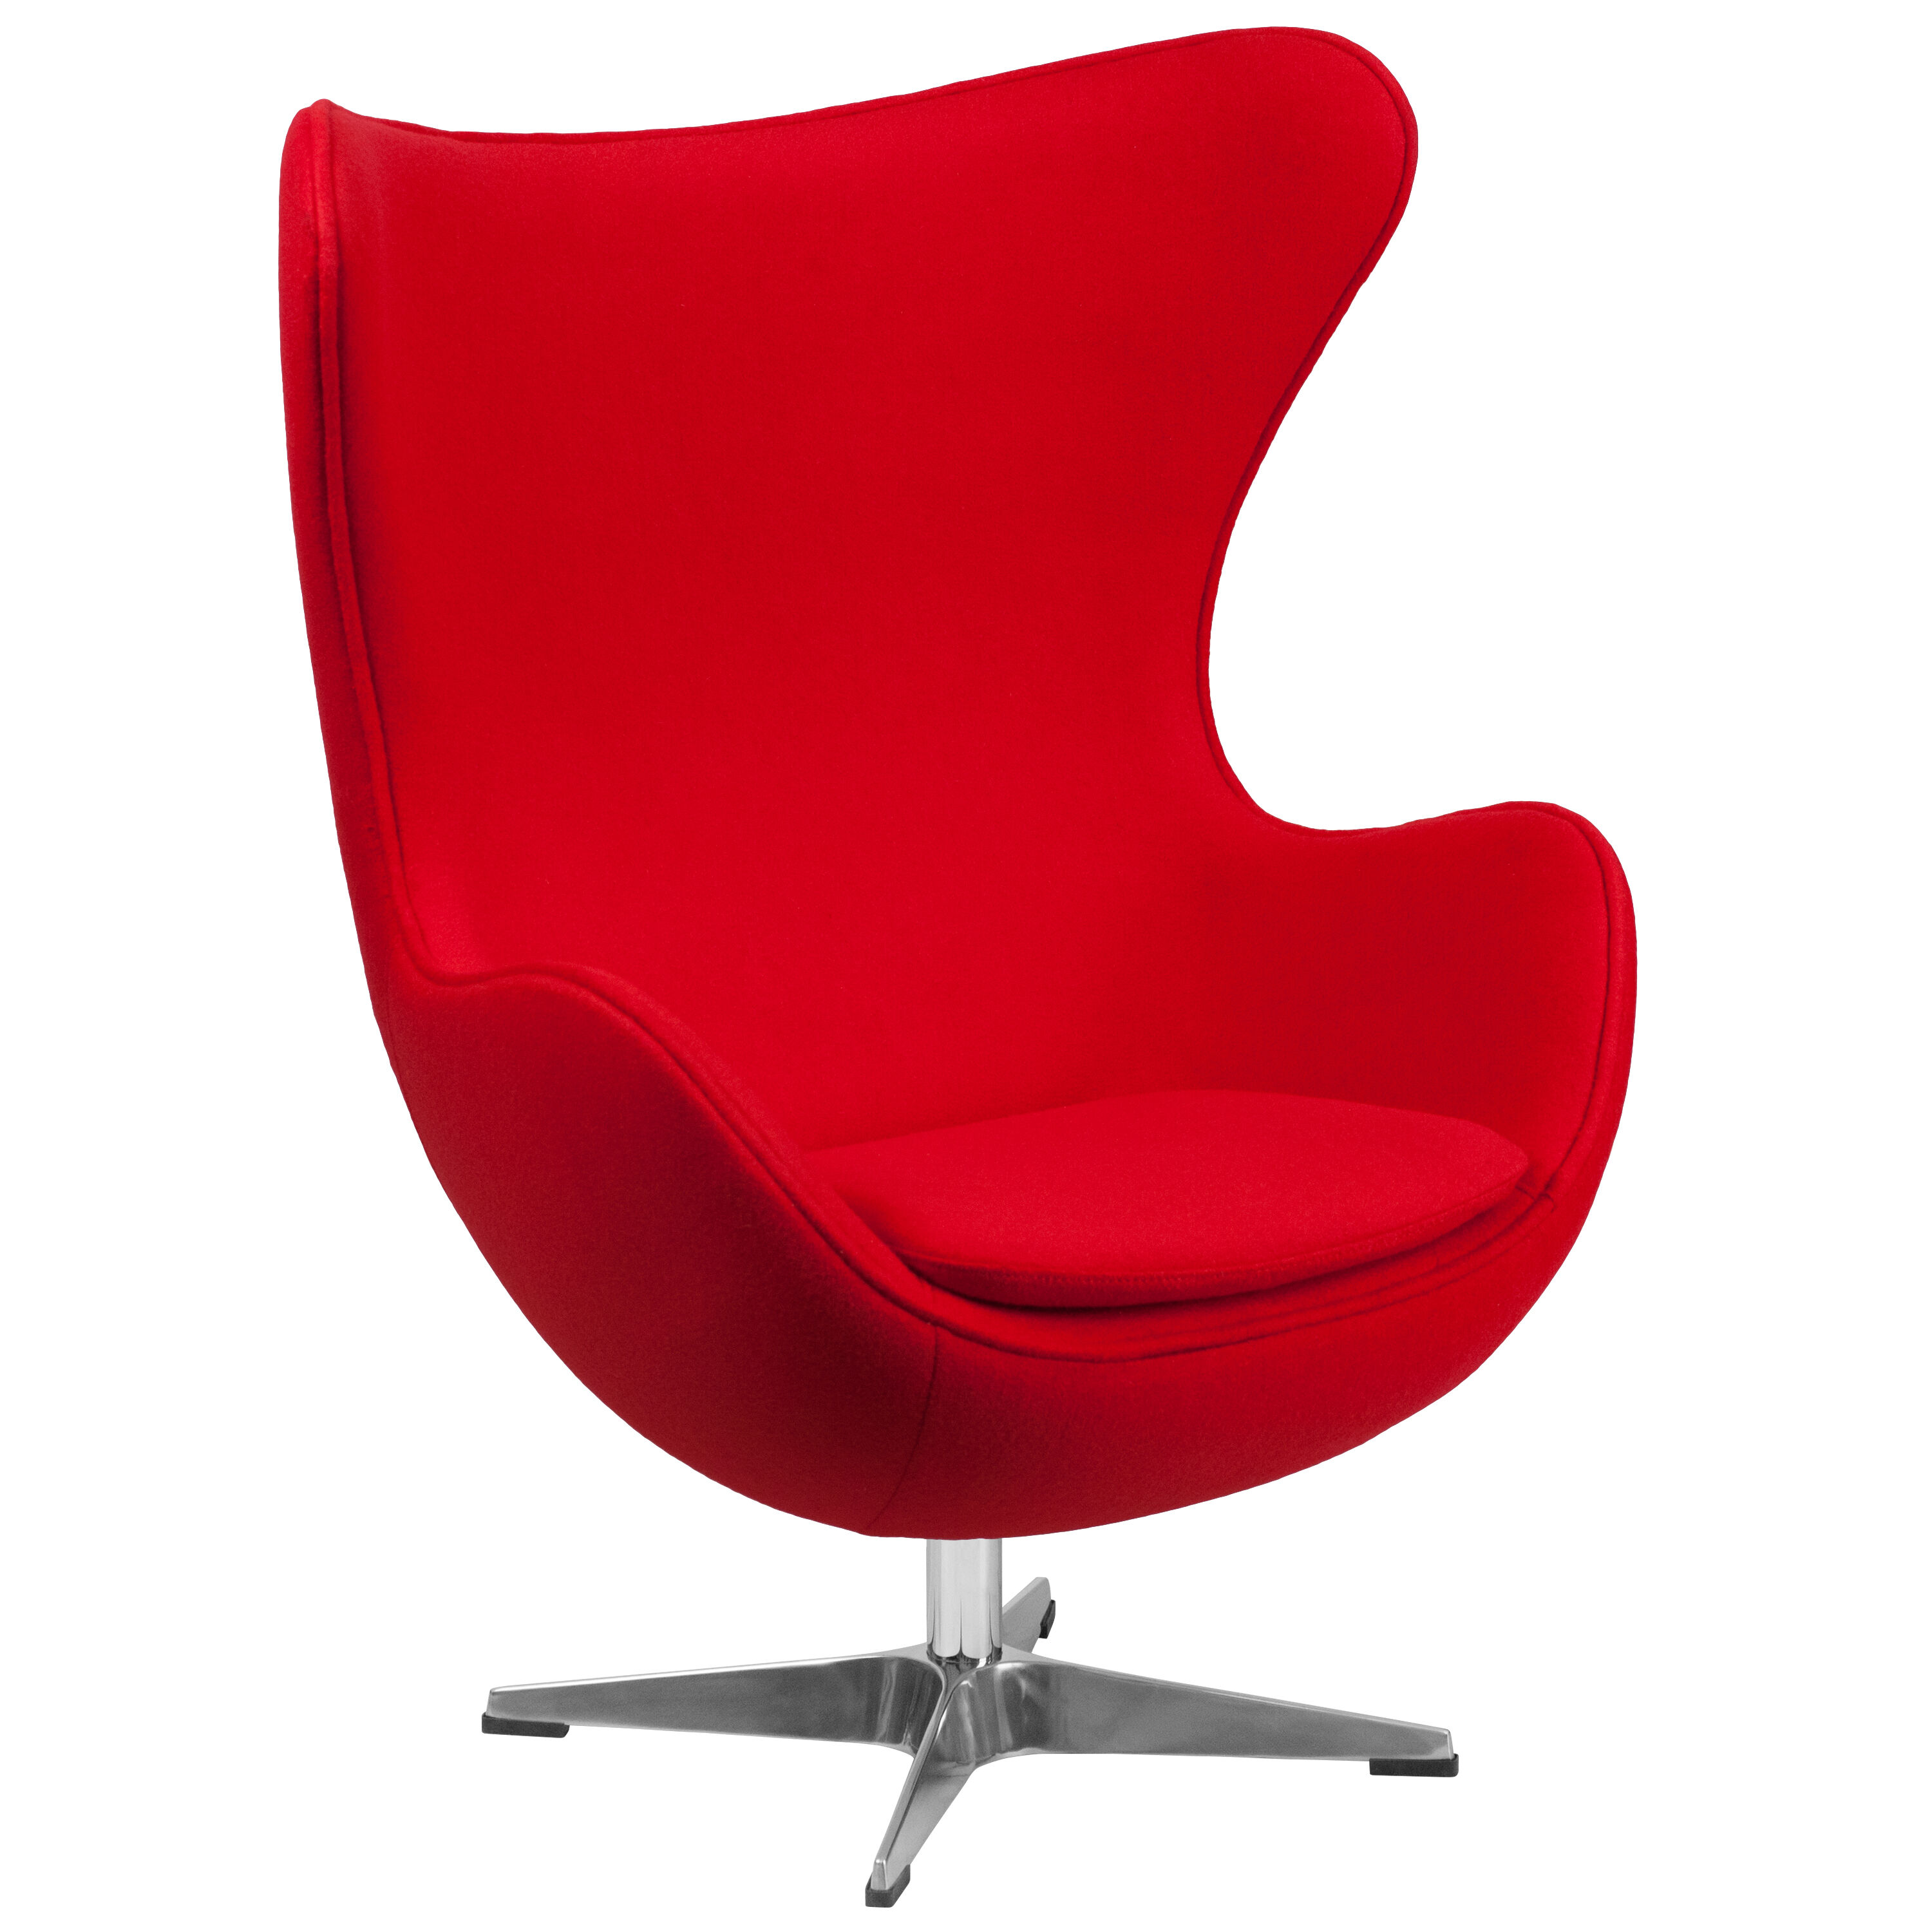 Used Egg Chair Flash Furniture Red Wool Fabric Egg Chair With Tilt Lock